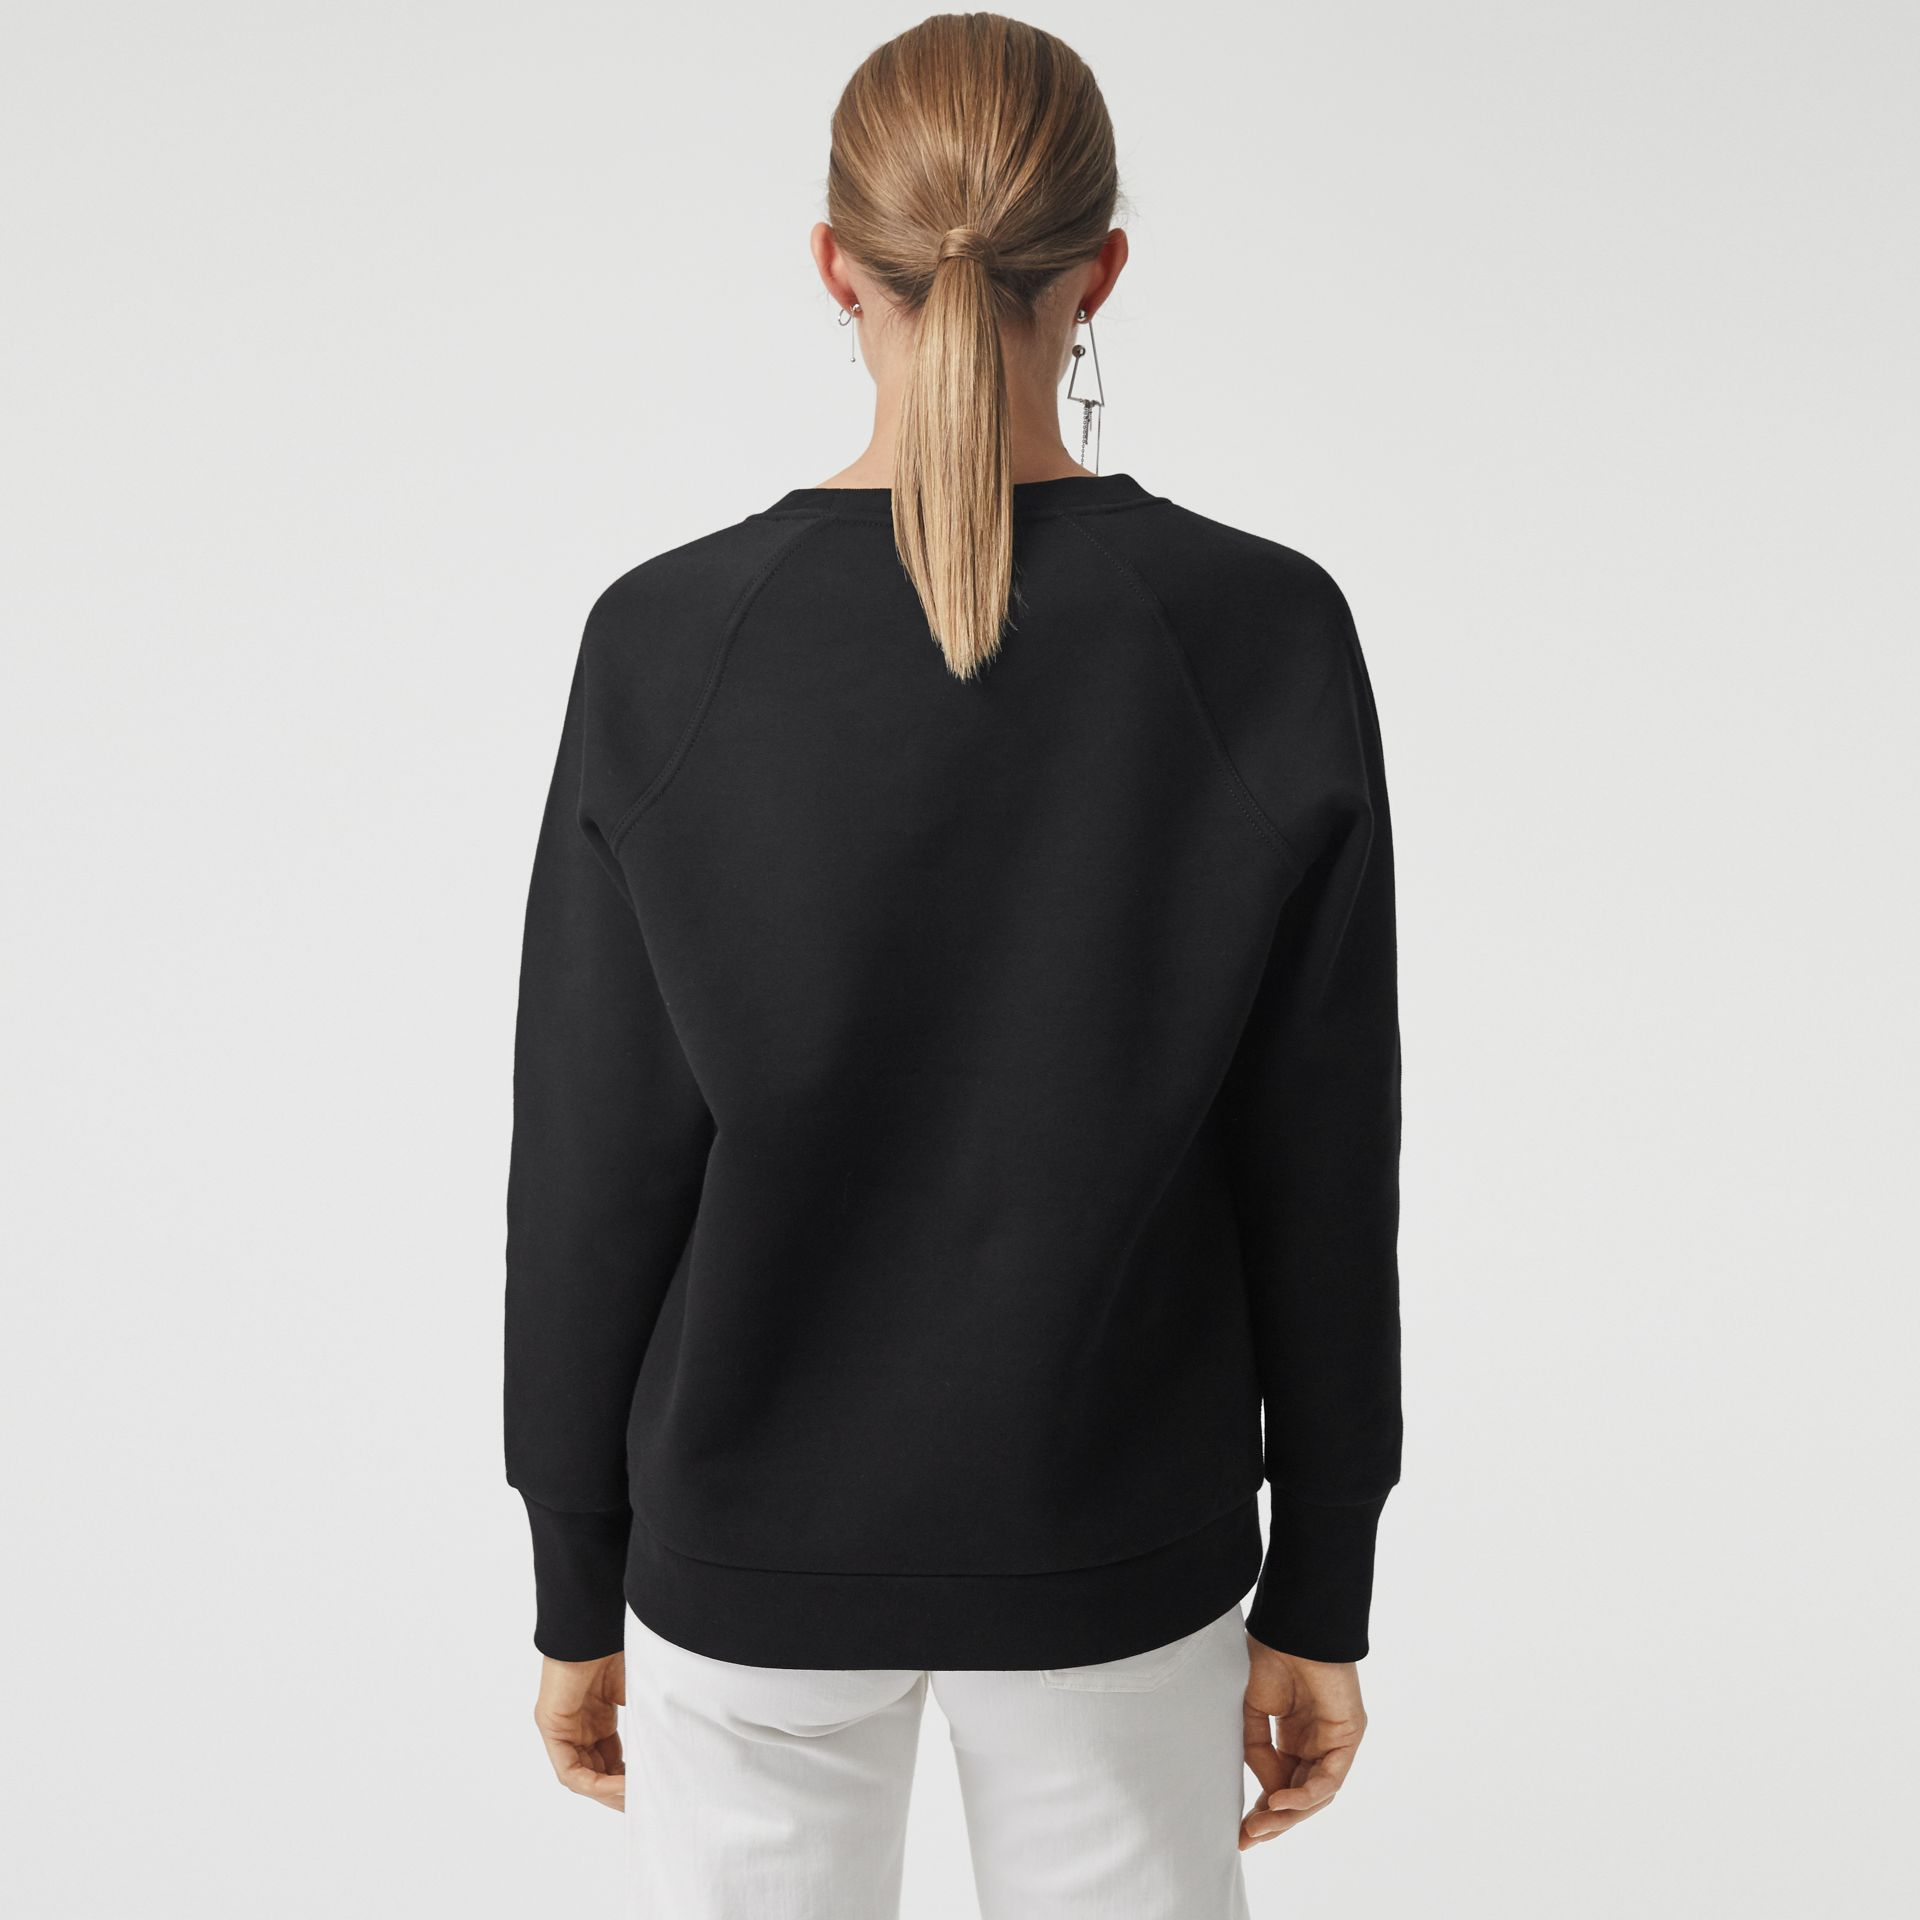 Embroidered Archive Logo Cotton Blend Sweatshirt in Black - Women | Burberry - gallery image 2